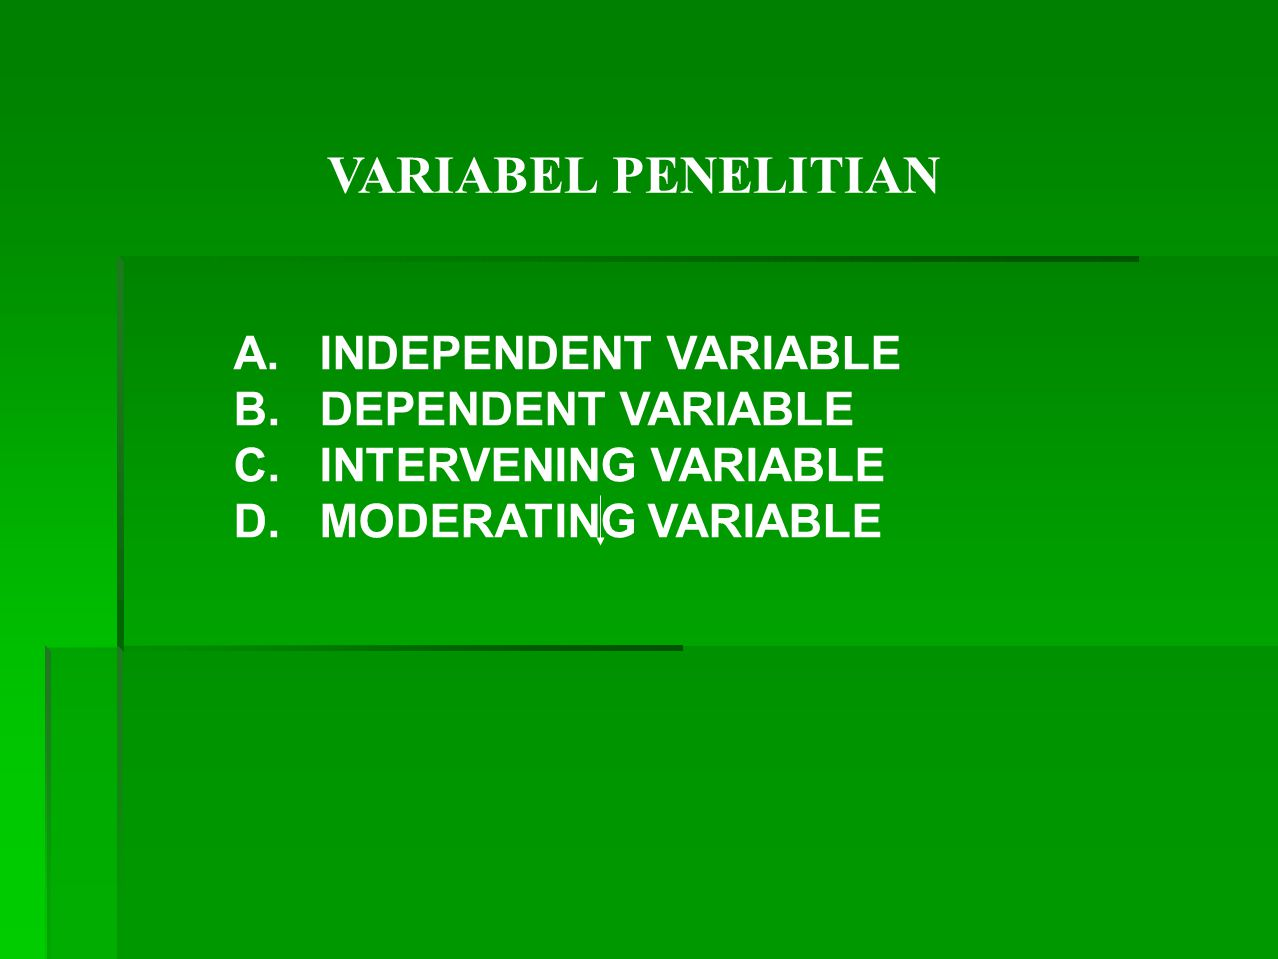 VARIABEL PENELITIAN A. INDEPENDENT VARIABLE B. DEPENDENT VARIABLE C.